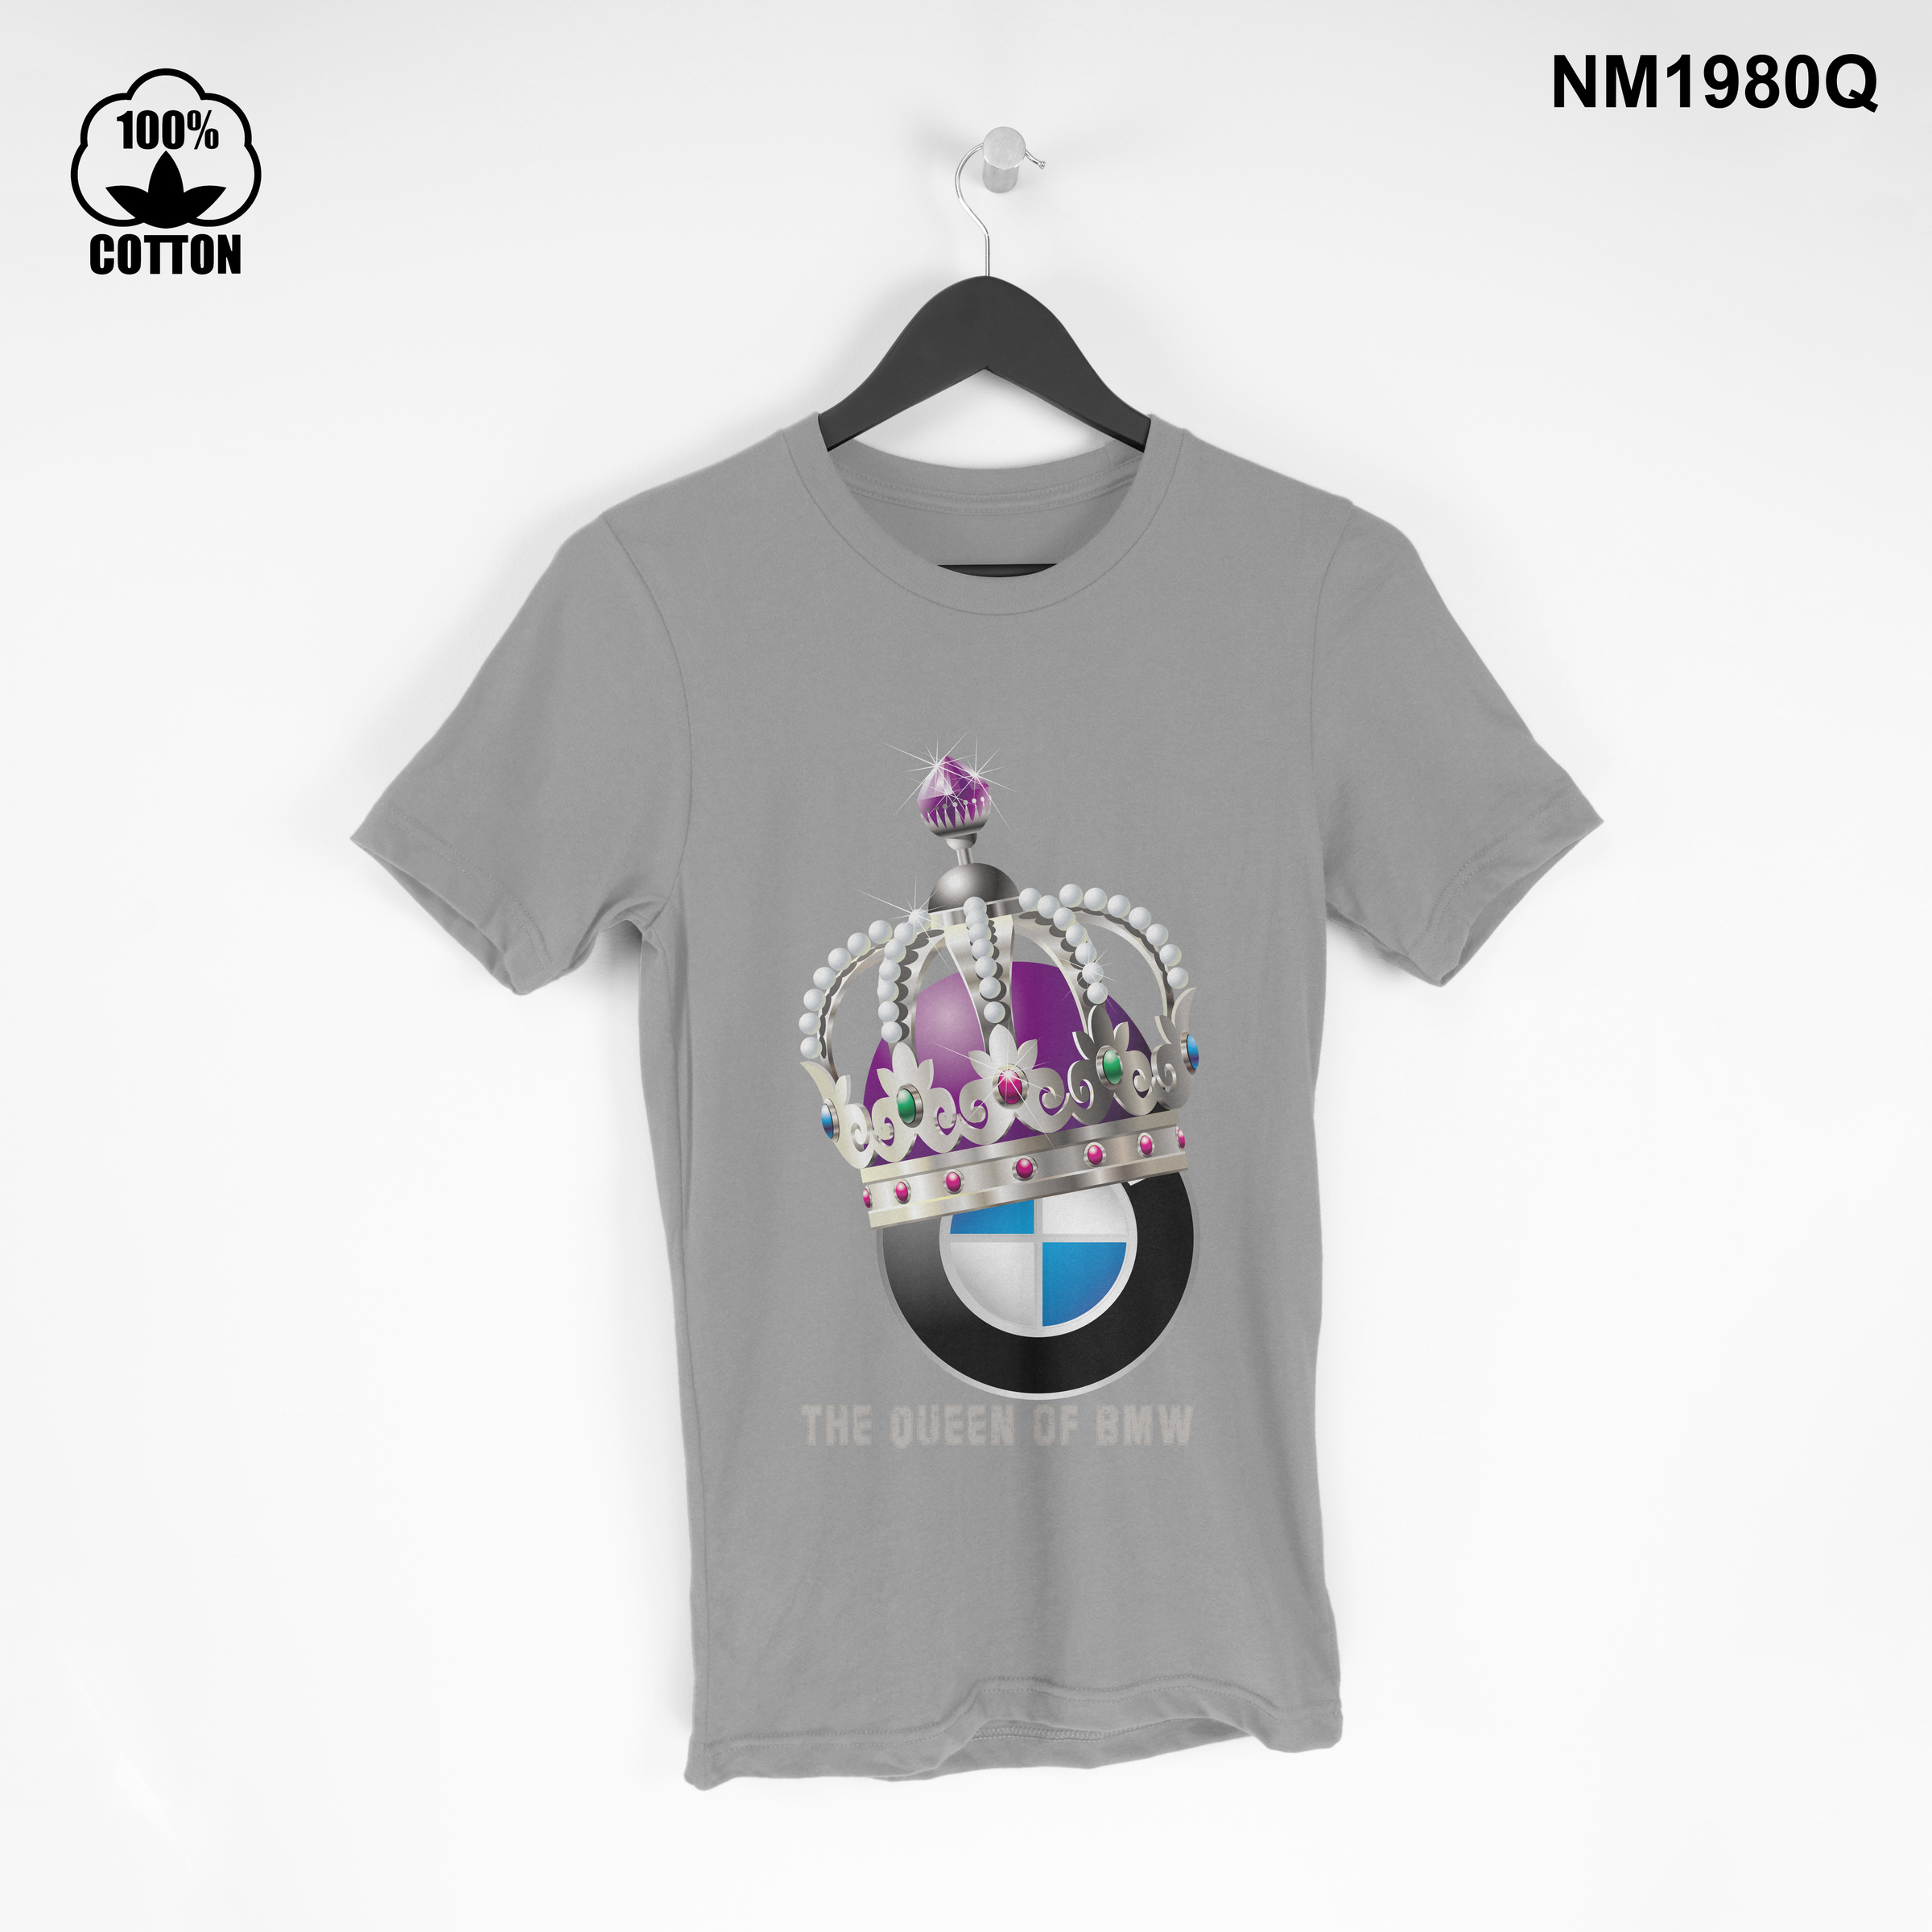 1.37 the Queen of BMW T Shirt Tee mens Clothing New Design gainsboro.jpg